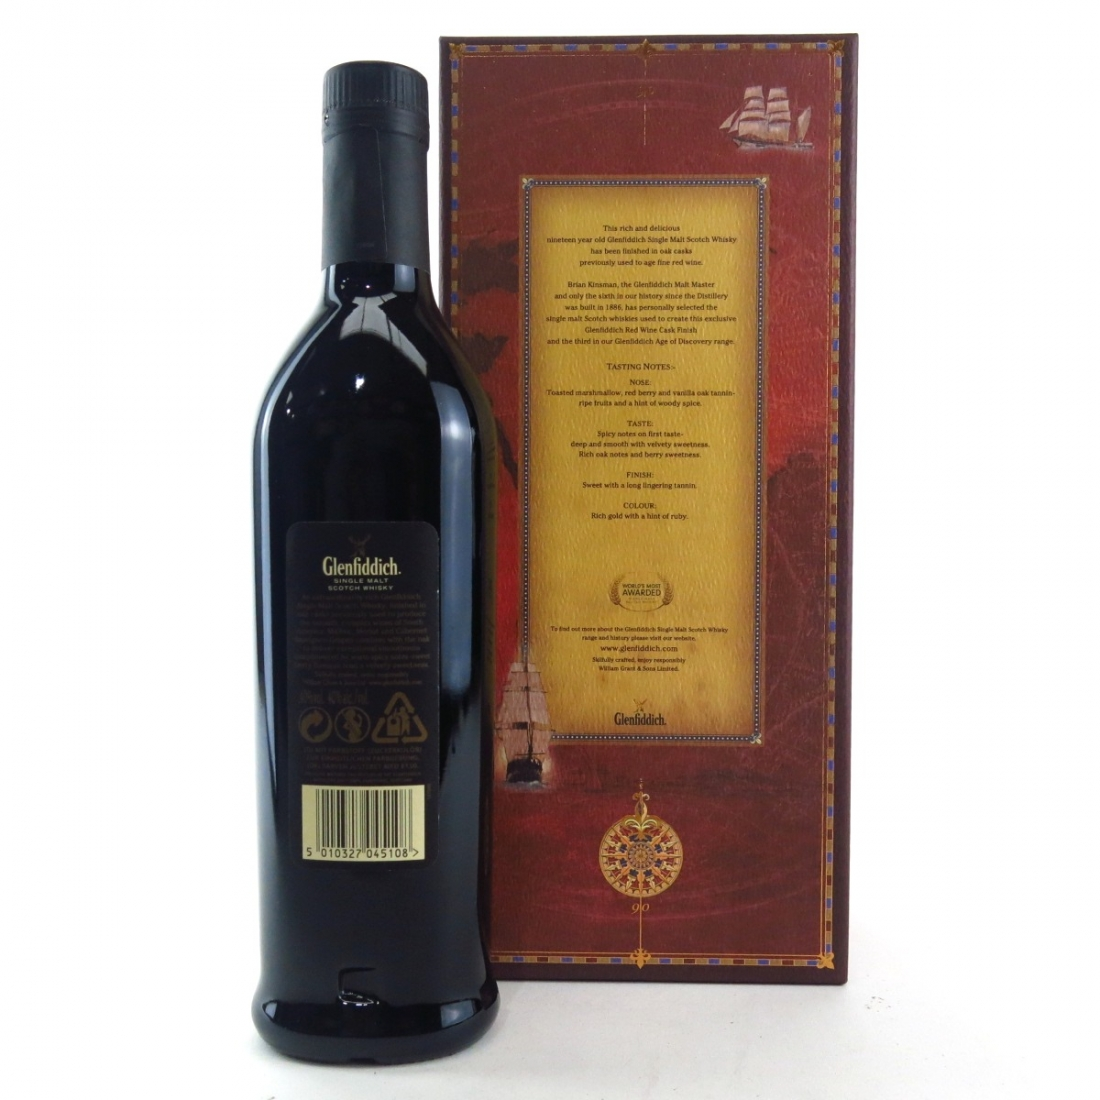 Glenfiddich Age of Discovery 19 Year Old / Red Wine Finish